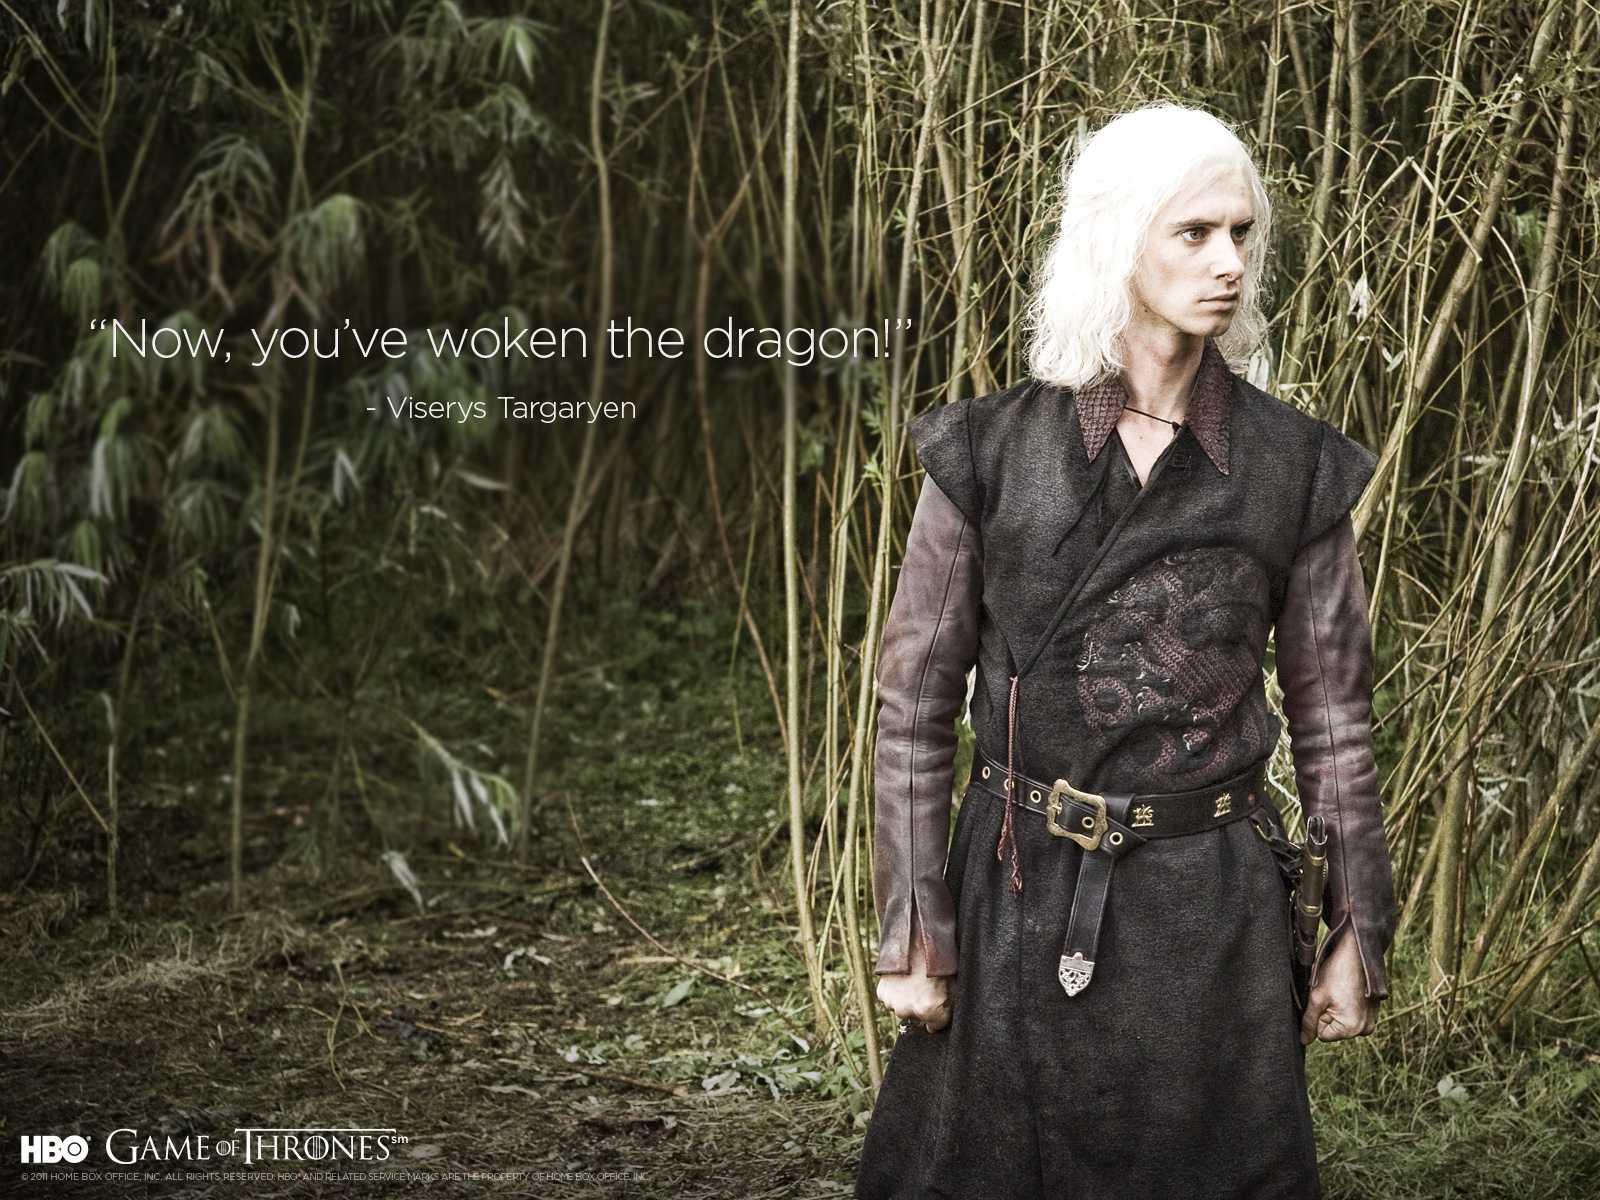 http://4.bp.blogspot.com/-lDMdpFjRFxw/UBMrb2dZmqI/AAAAAAAADUY/1jVoKfM5HVw/s1600/Game-of-Thrones-Wallpapers-40.jpg